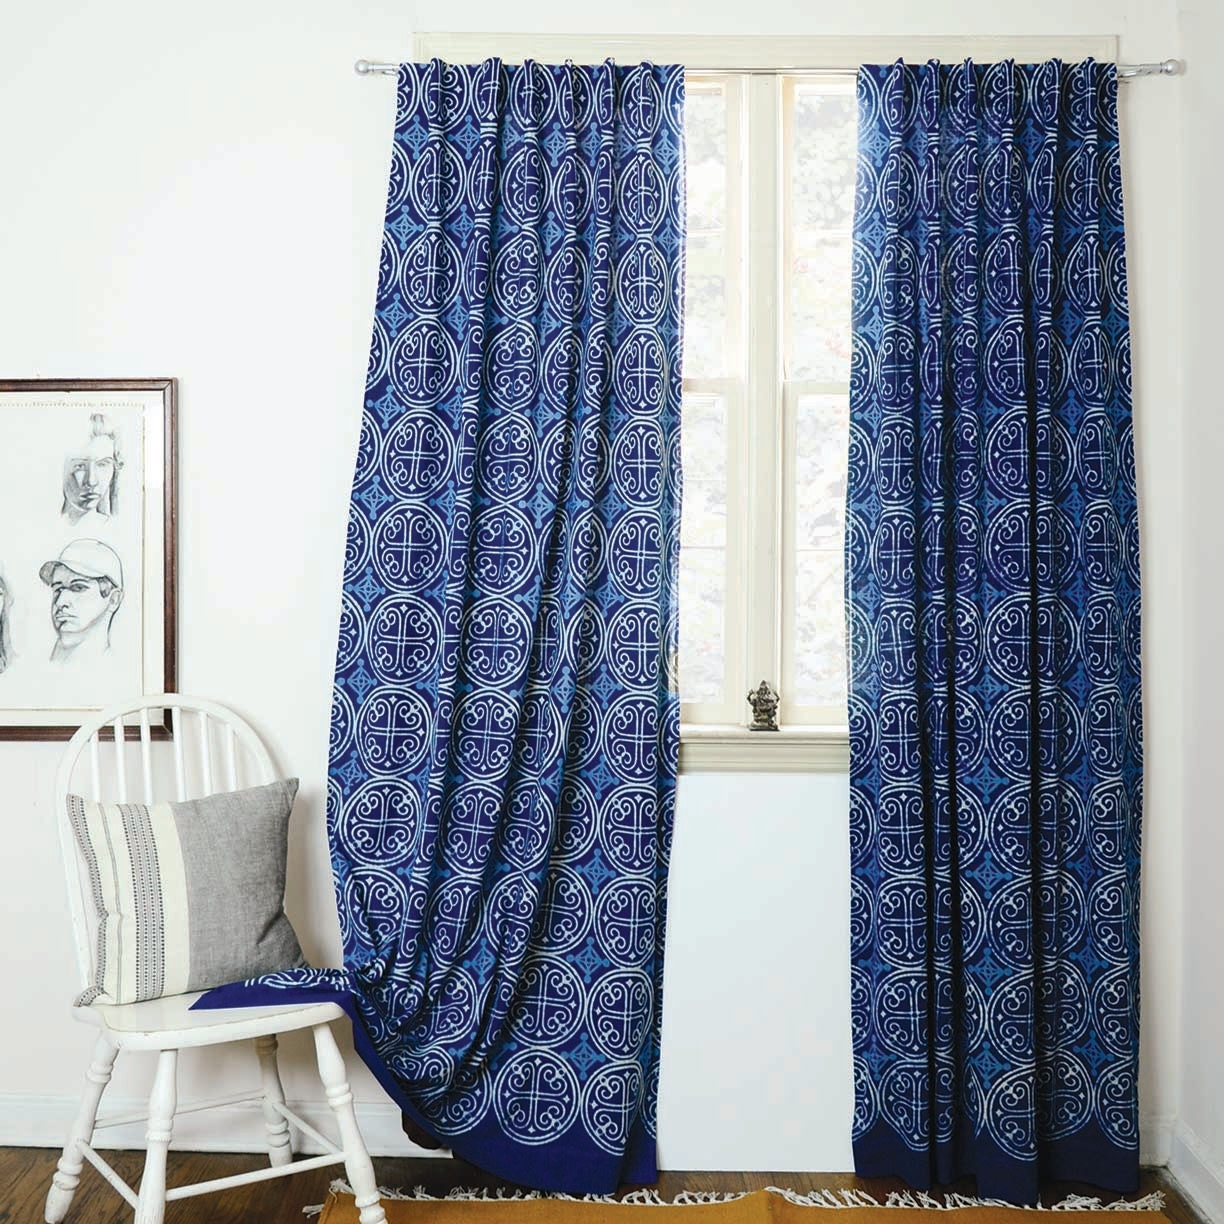 Indigo Curtains Blue Curtains Window Treatment Bedroom By